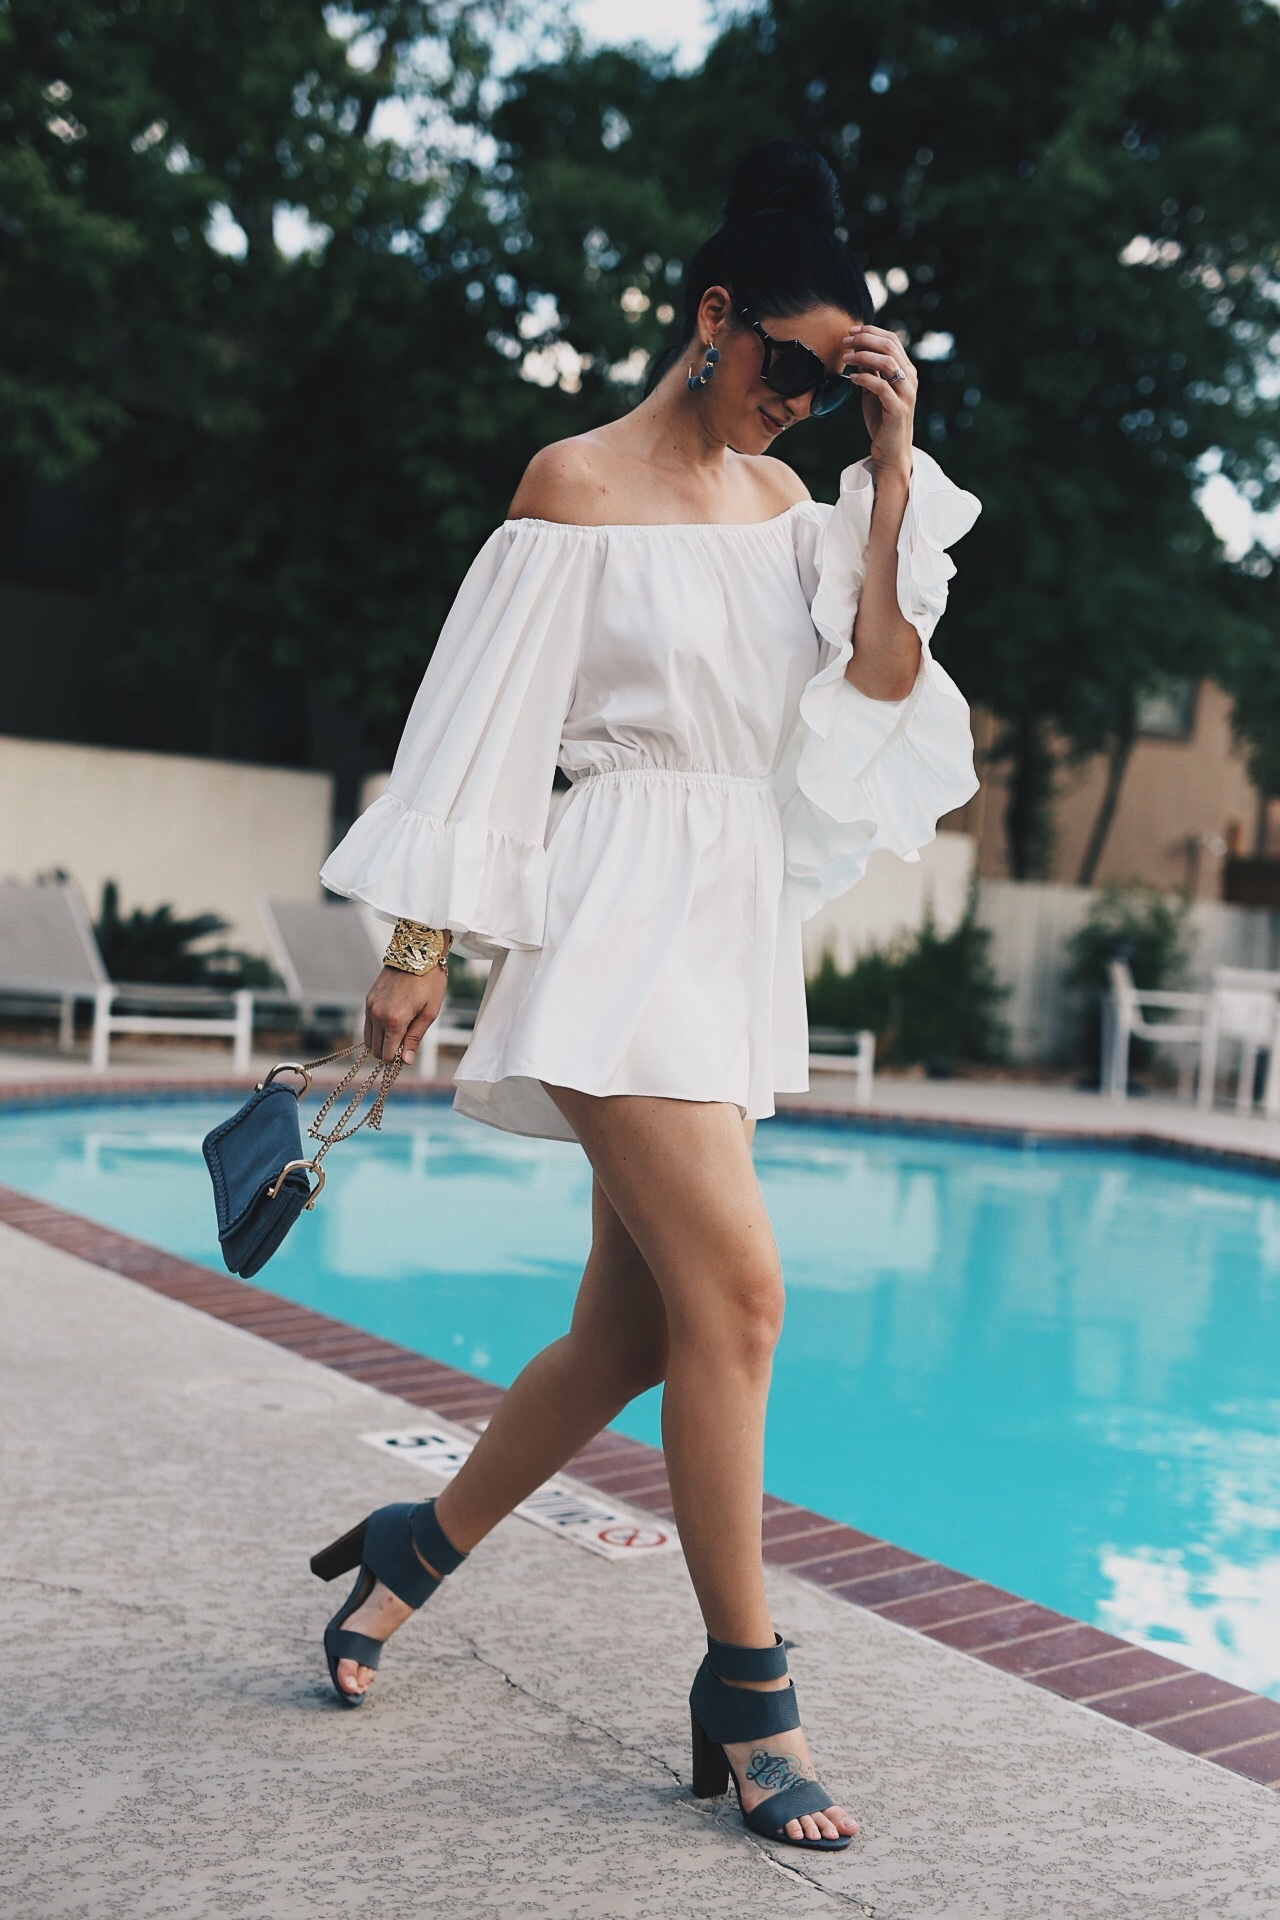 The Best Rompers for a Long Torso | how to wear a romper if you have a long torso | how to style a romper | summer fashion | summer style | dress for summer | what to wear for summer | warm weather fashion | summer fashion tips | summer style ideas | summer outfit ideas || Dressed to Kill